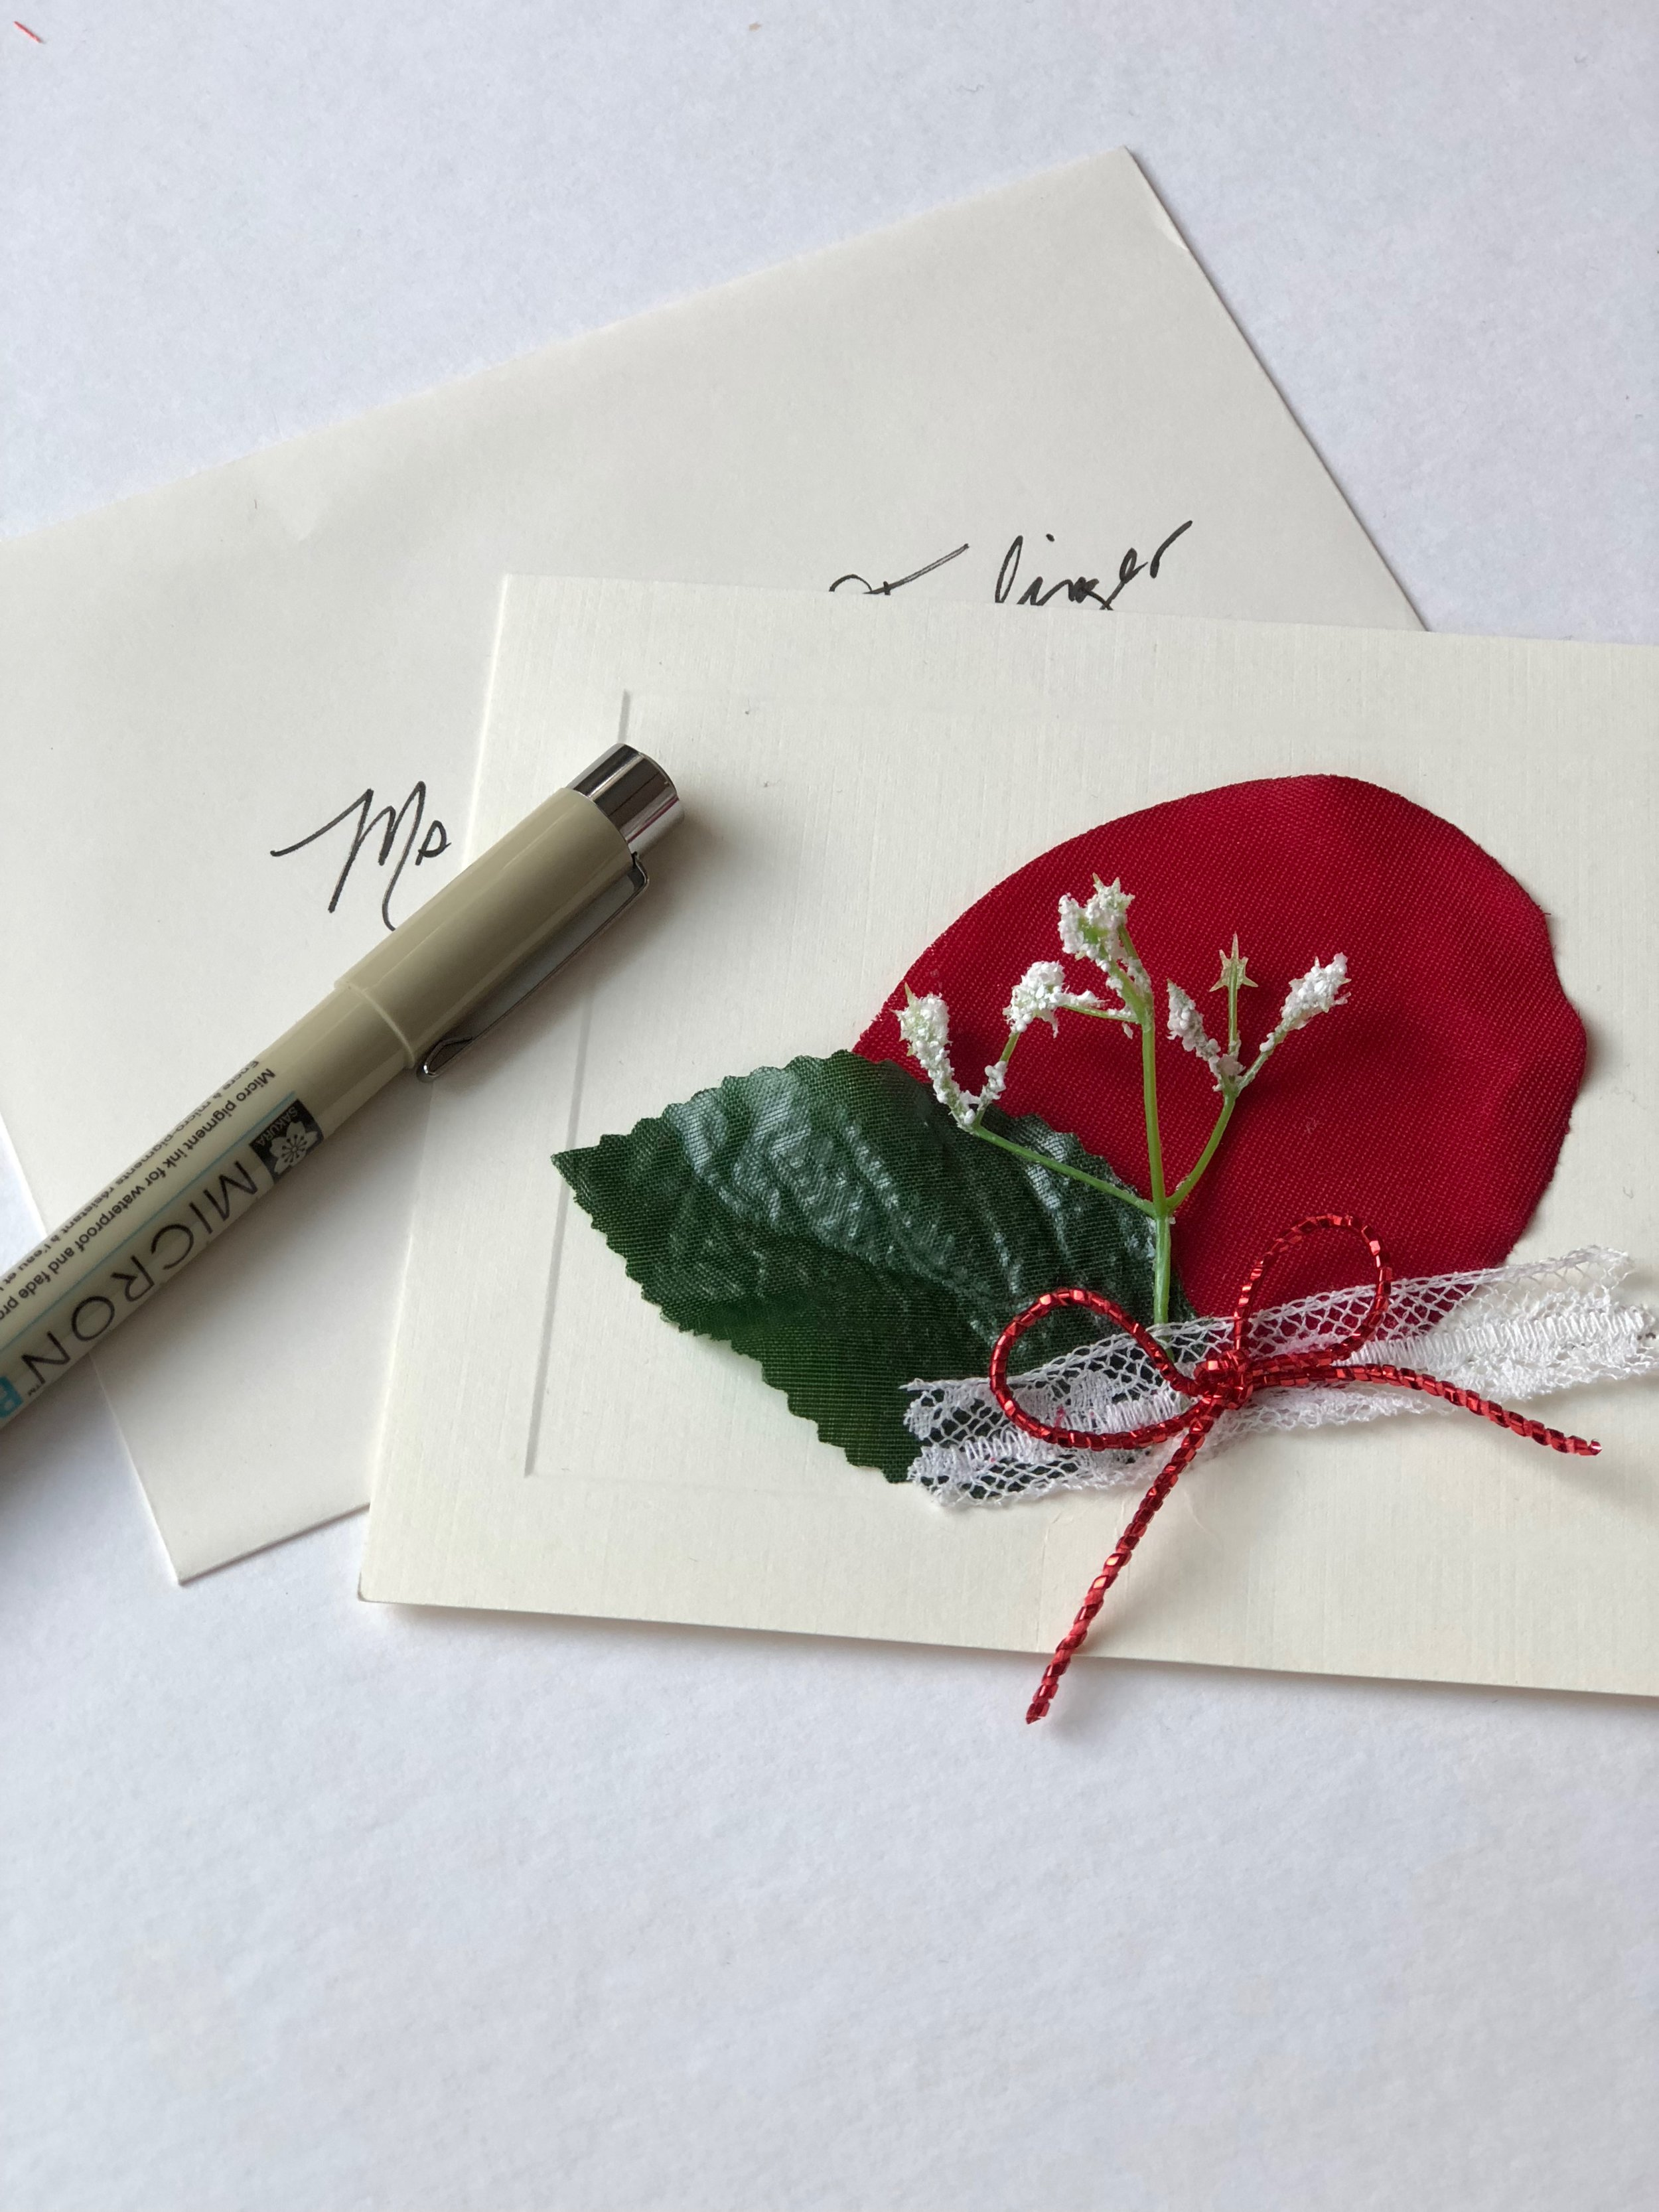 hand embellished Valentine's Day card with rose petals